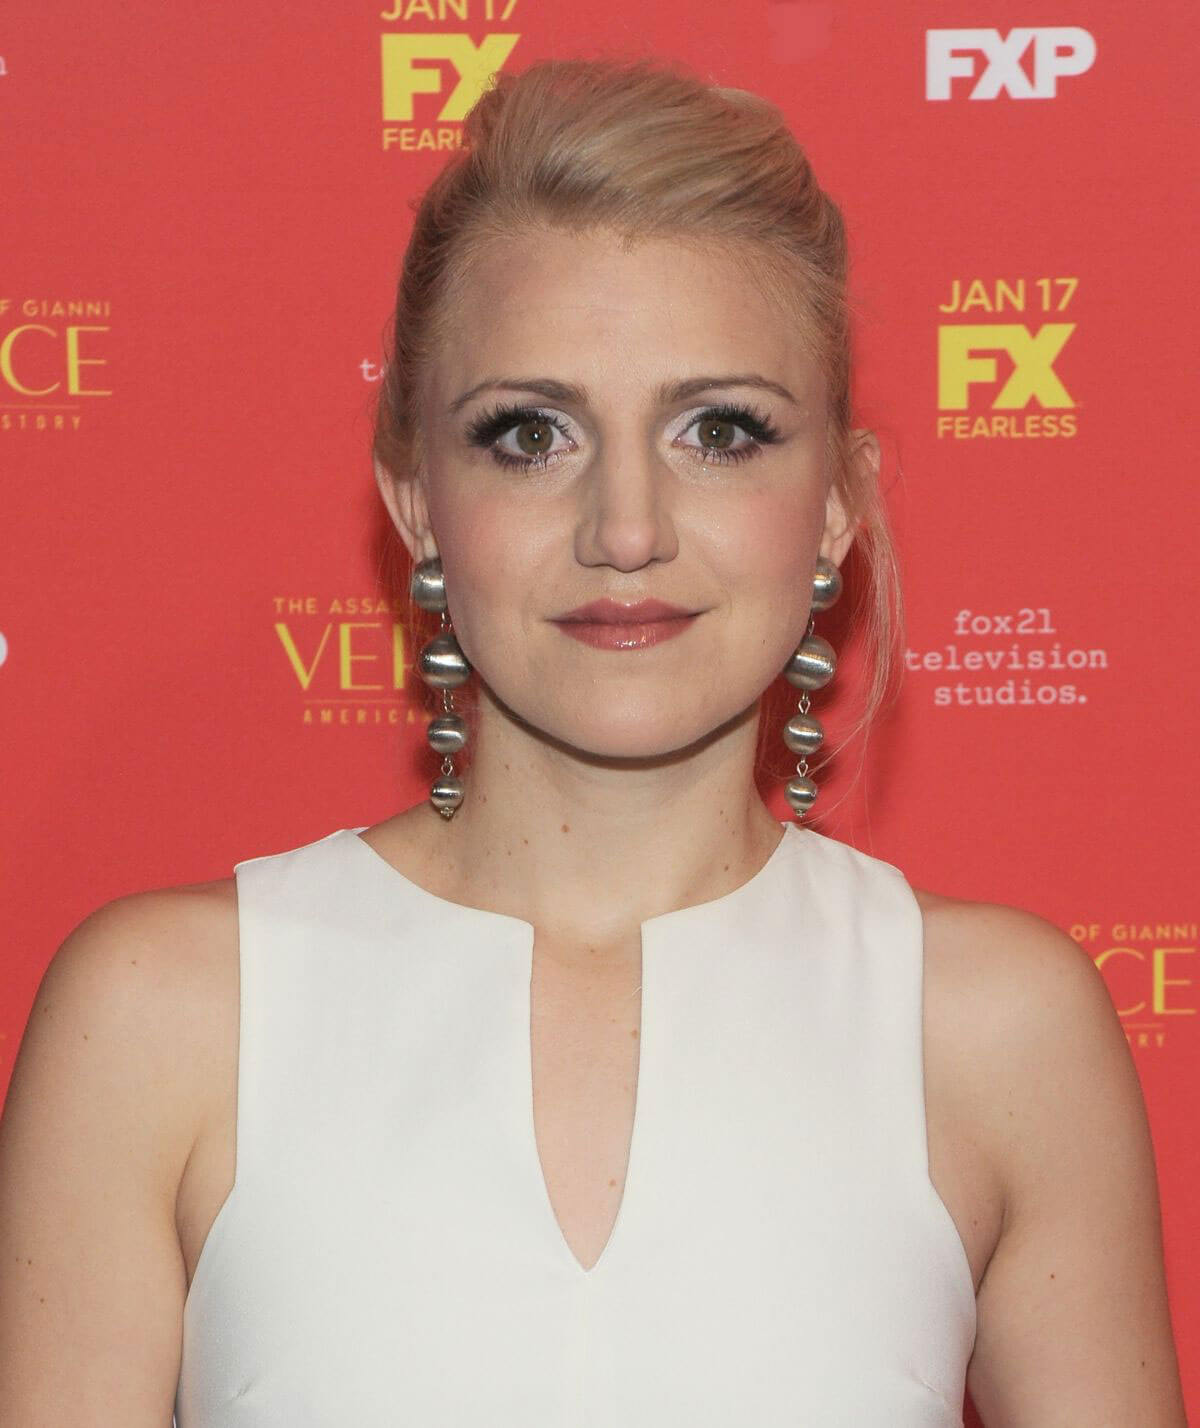 Cleavage Annaleigh Ashford nude (98 foto and video), Tits, Paparazzi, Boobs, butt 2020